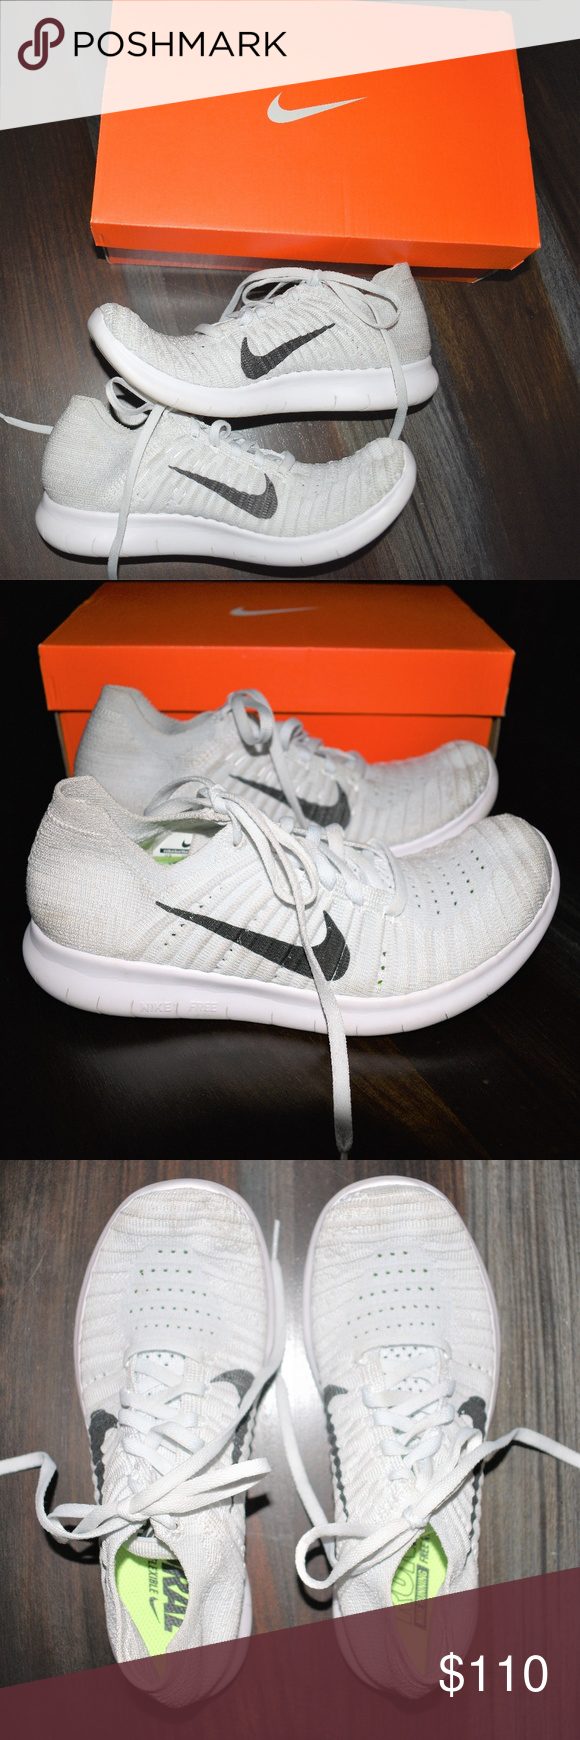 official photos 7231a fae1a Nike Shoes Womens Nike free rn flyknit tennishoes Size 7 Euro size 38  Preowned Rare version